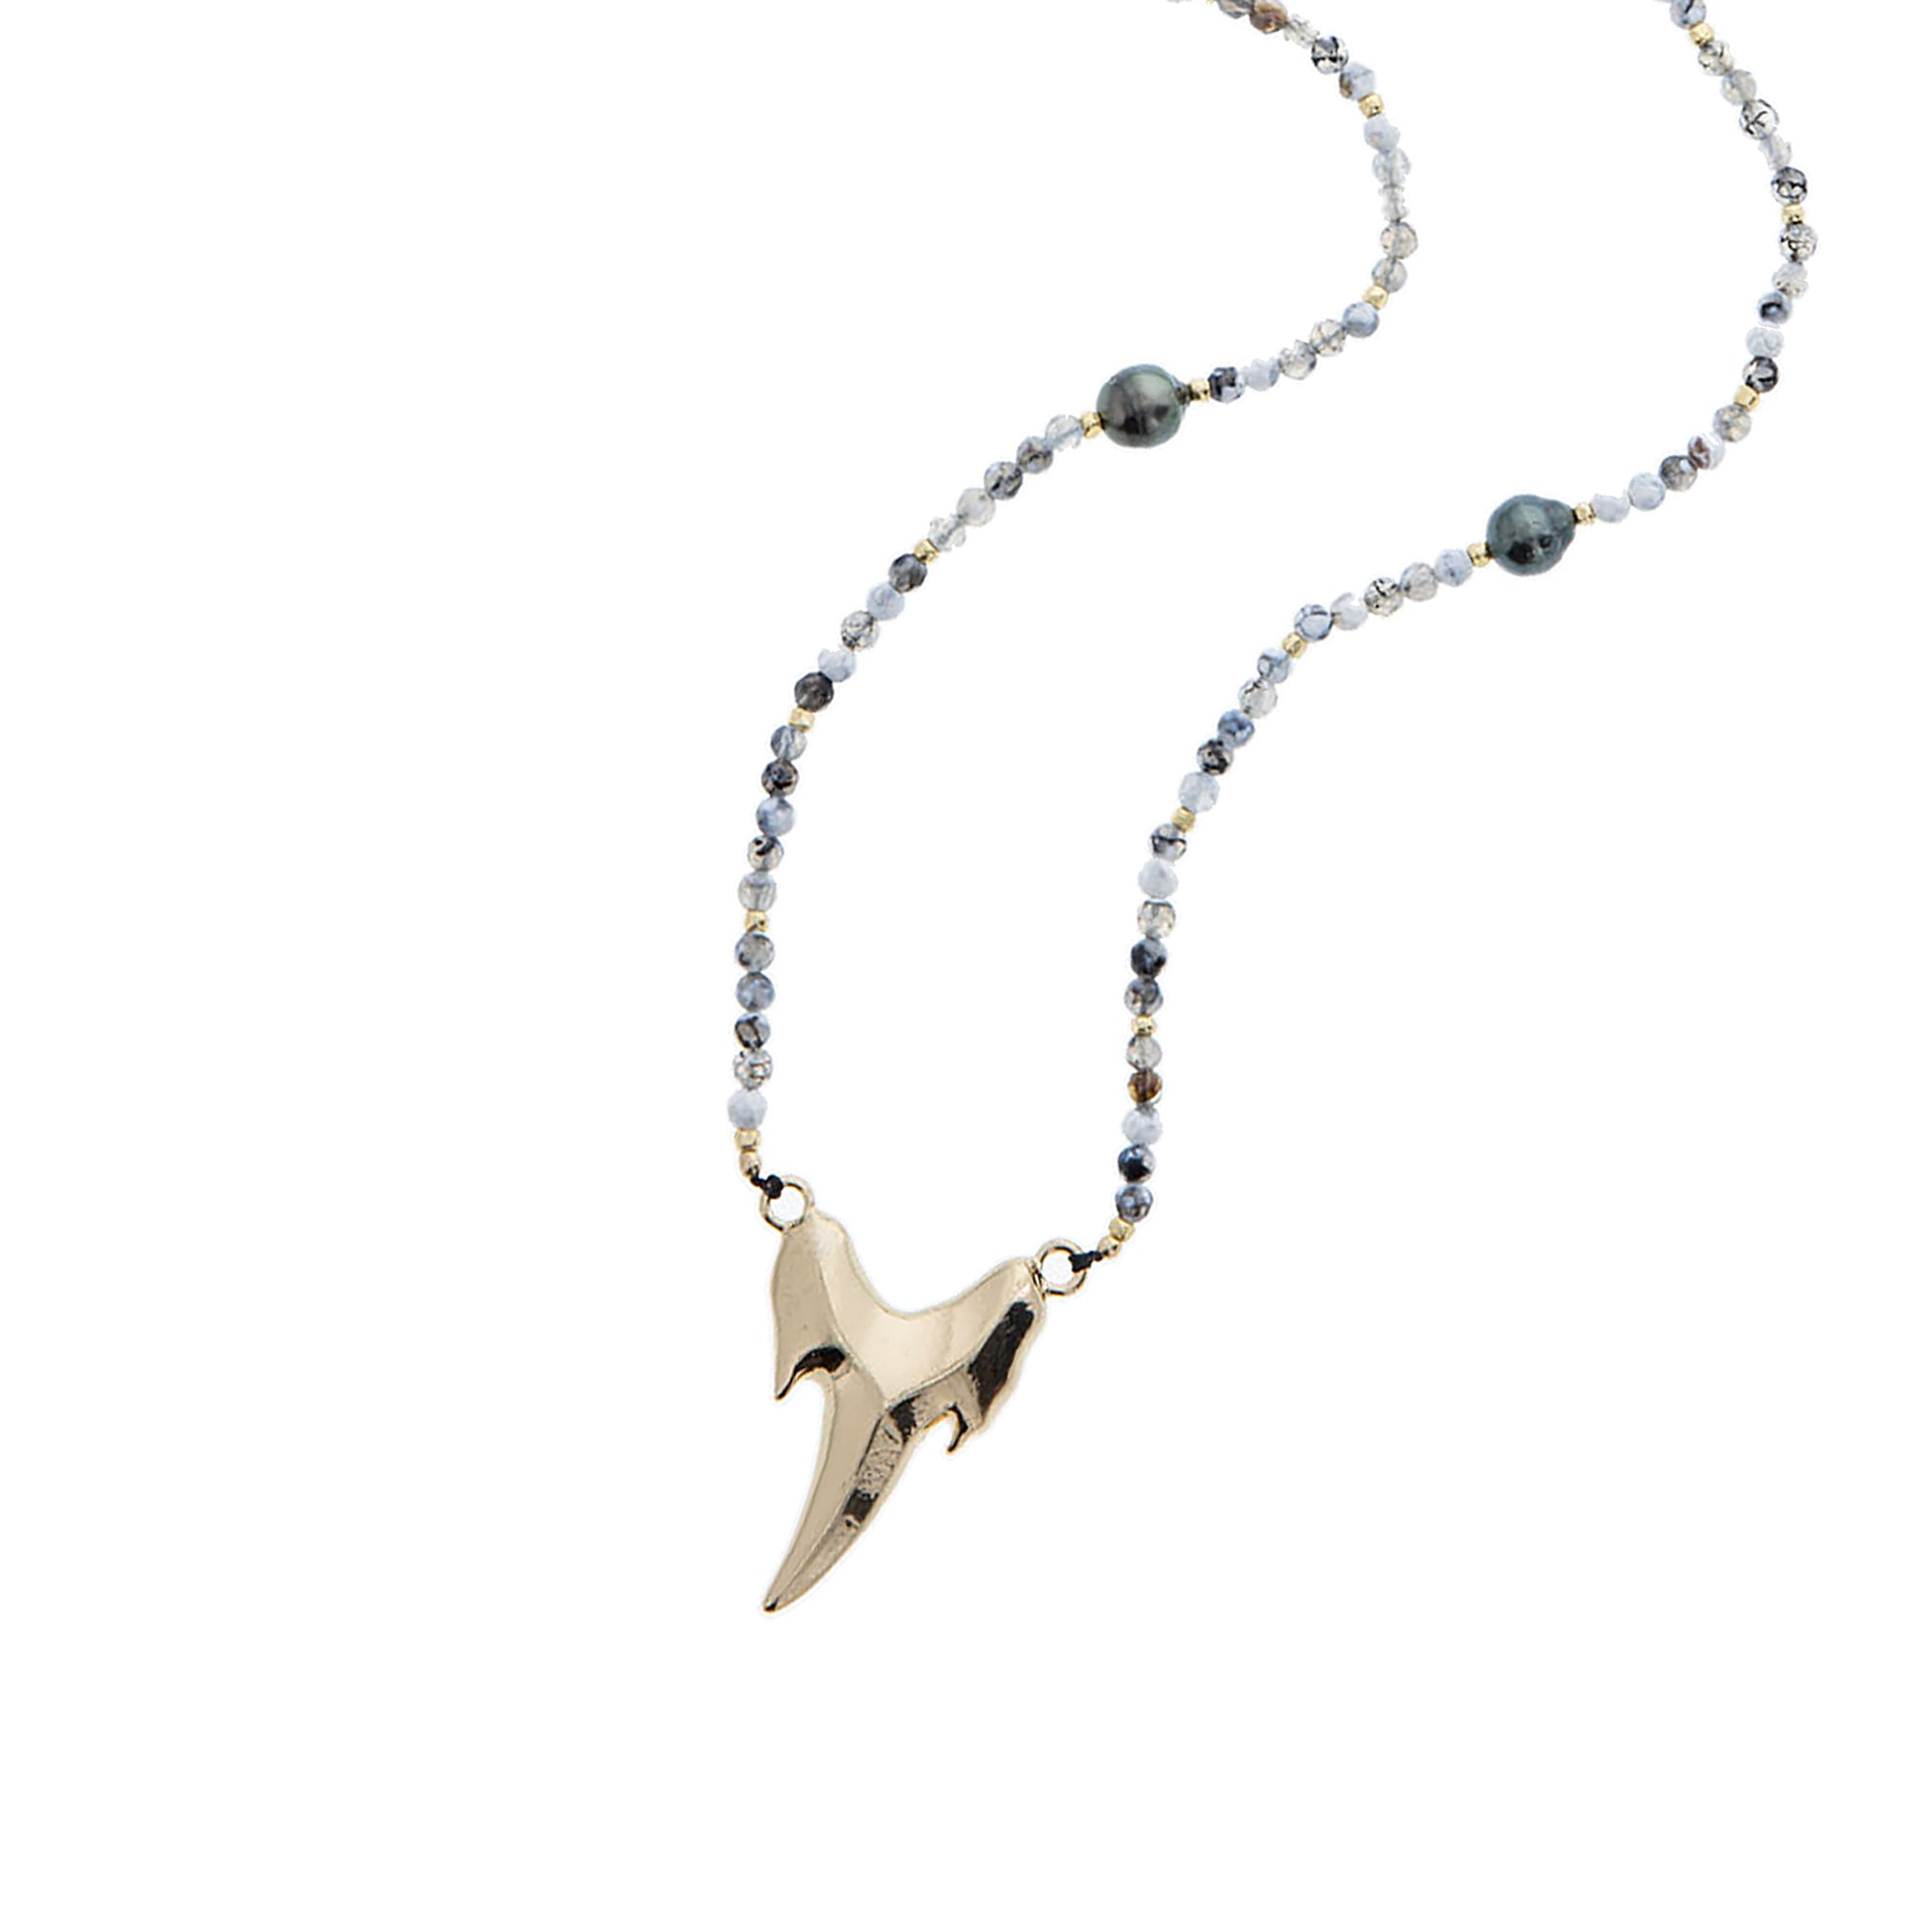 Niho Nui Necklace - 21 Degrees North Designs